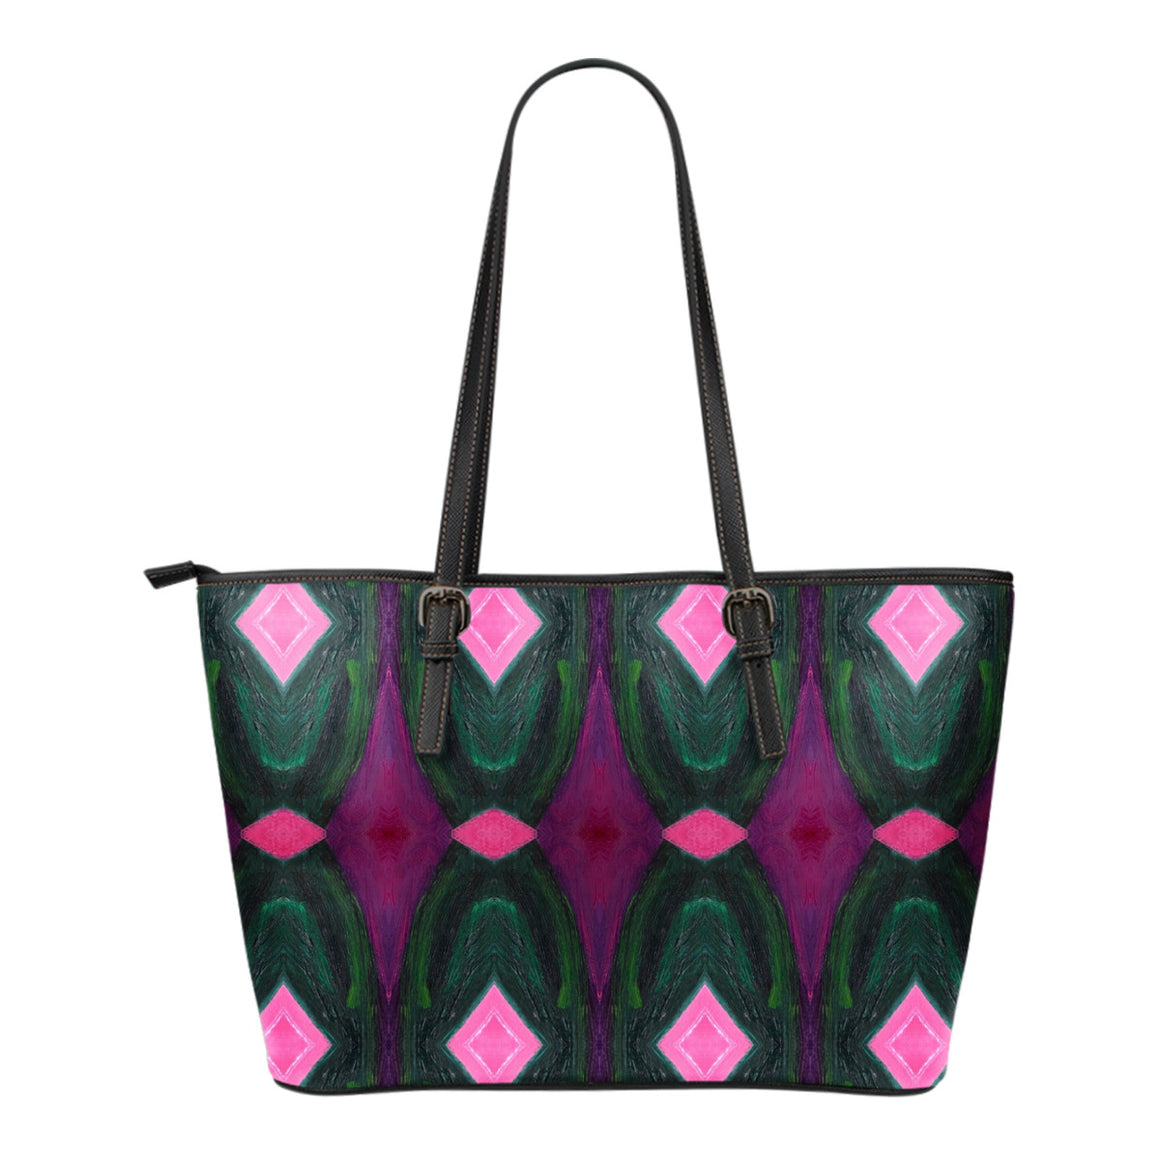 Plum Bago Small Leather Tote